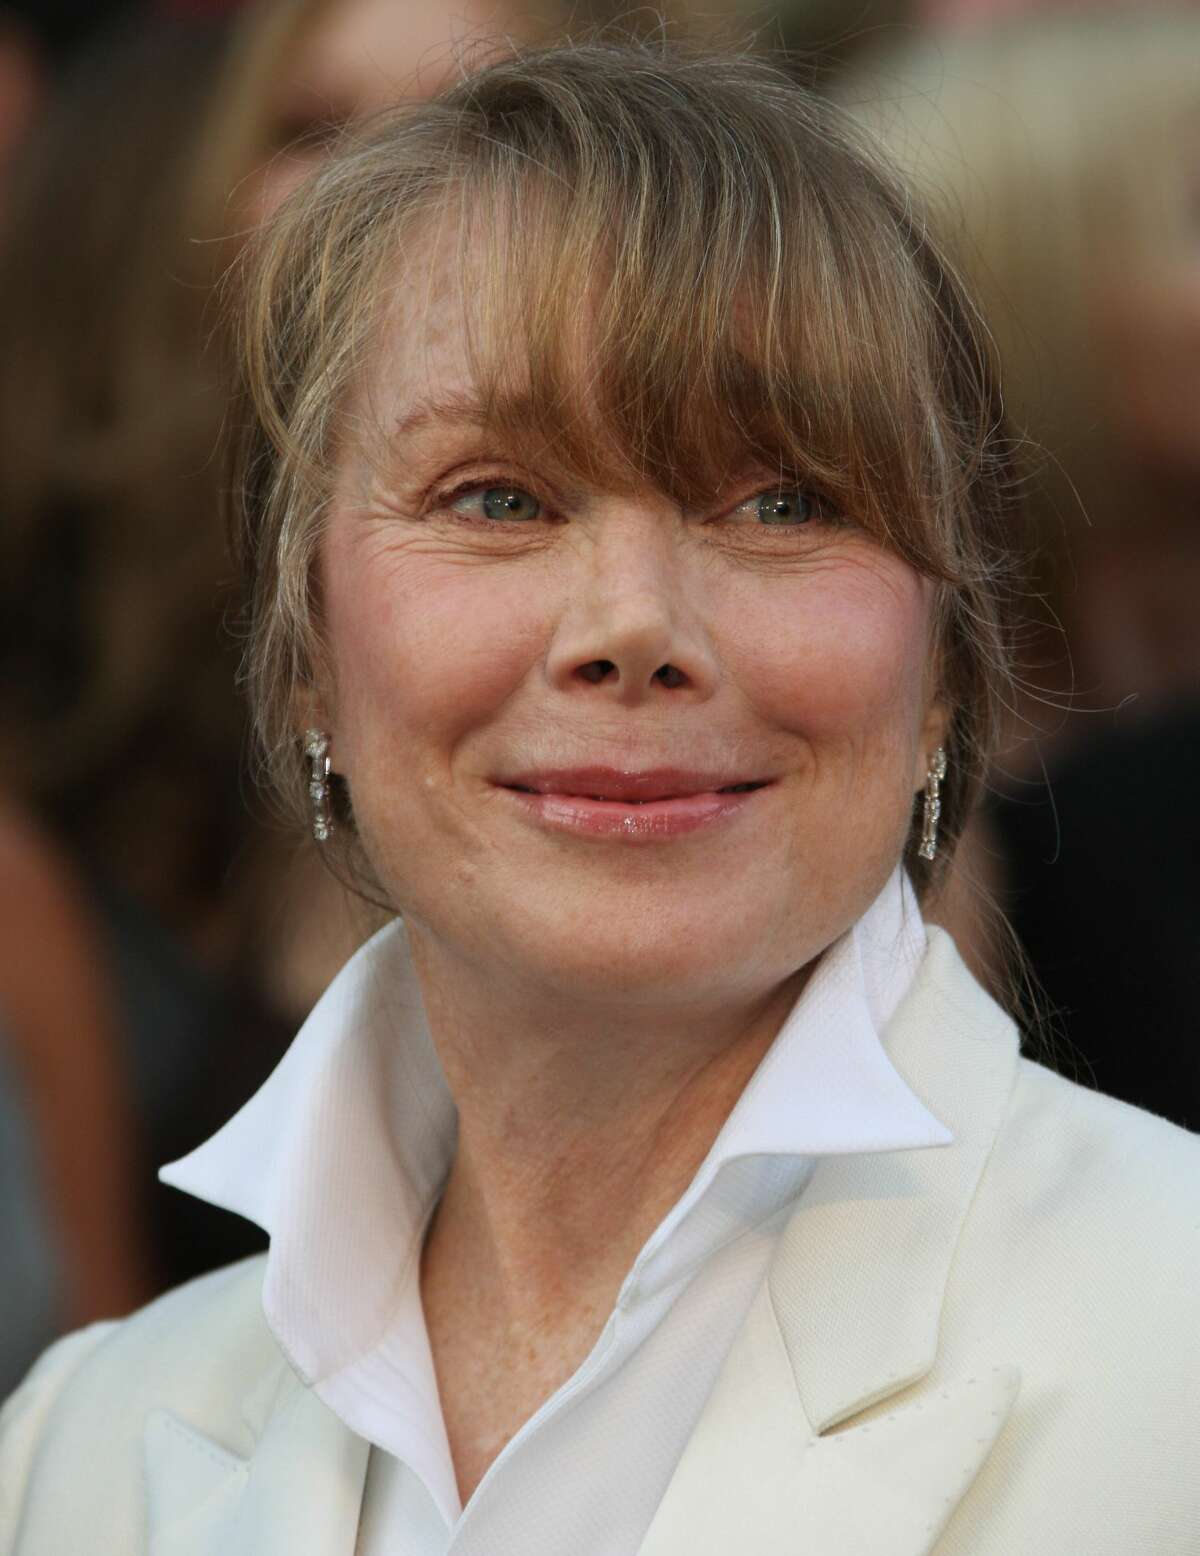 Keep going for more photos of Sissy Spacek throughout her career.